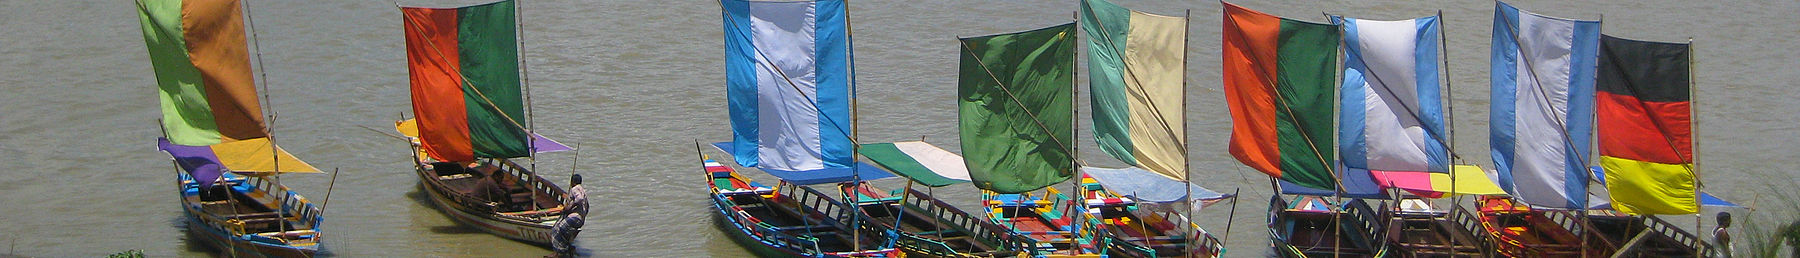 Sailboats in the Brahmaputra River